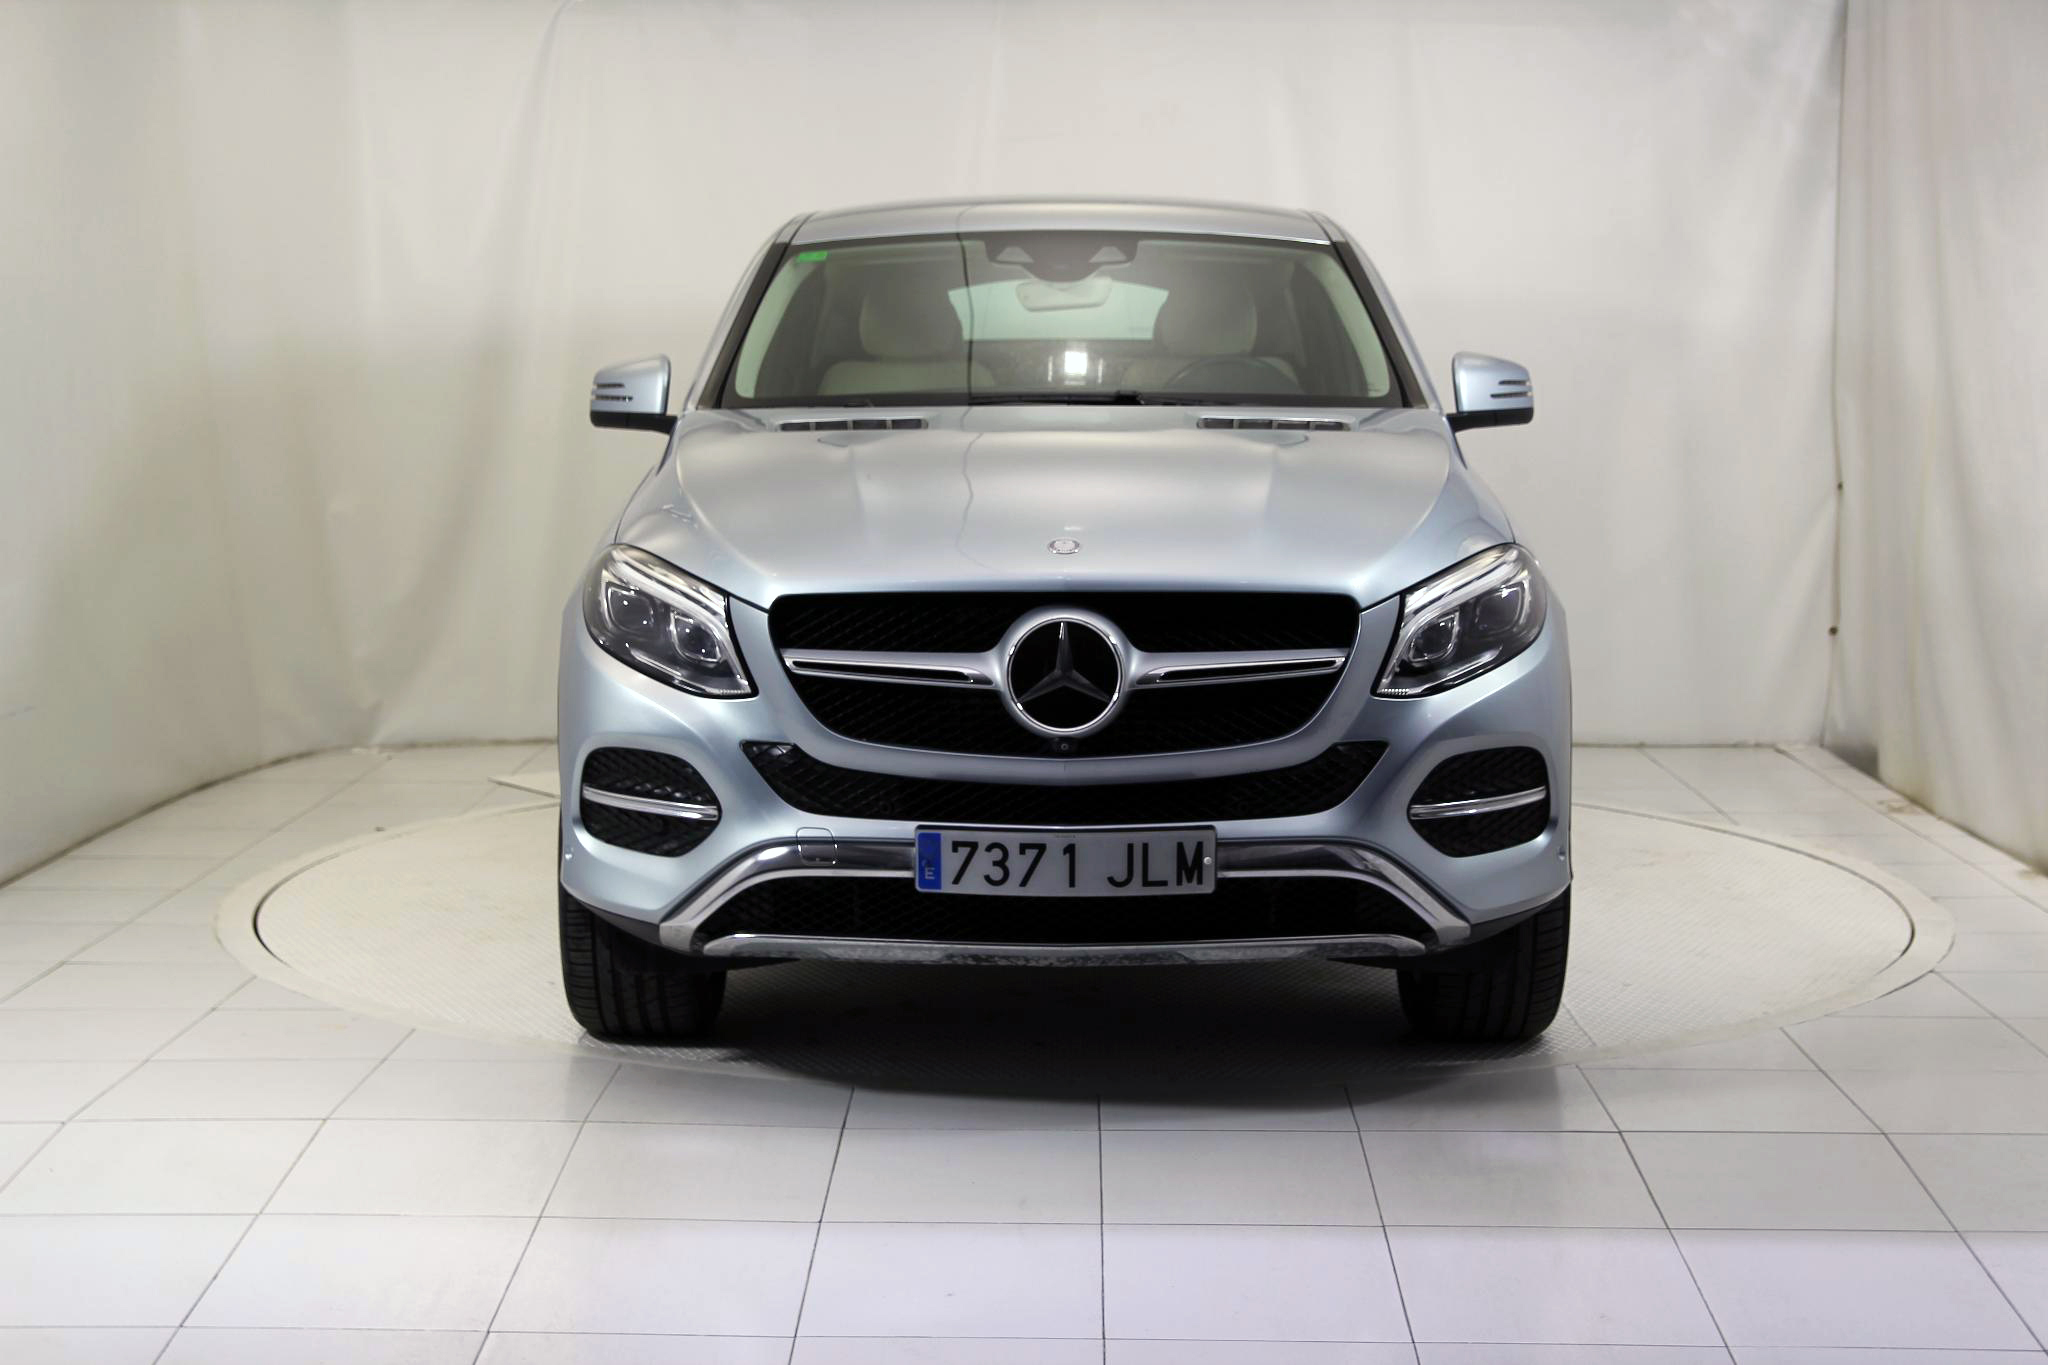 Mercedes-Benz Clase GLE GLE COUPE 350 D 4MATIC imagen 3